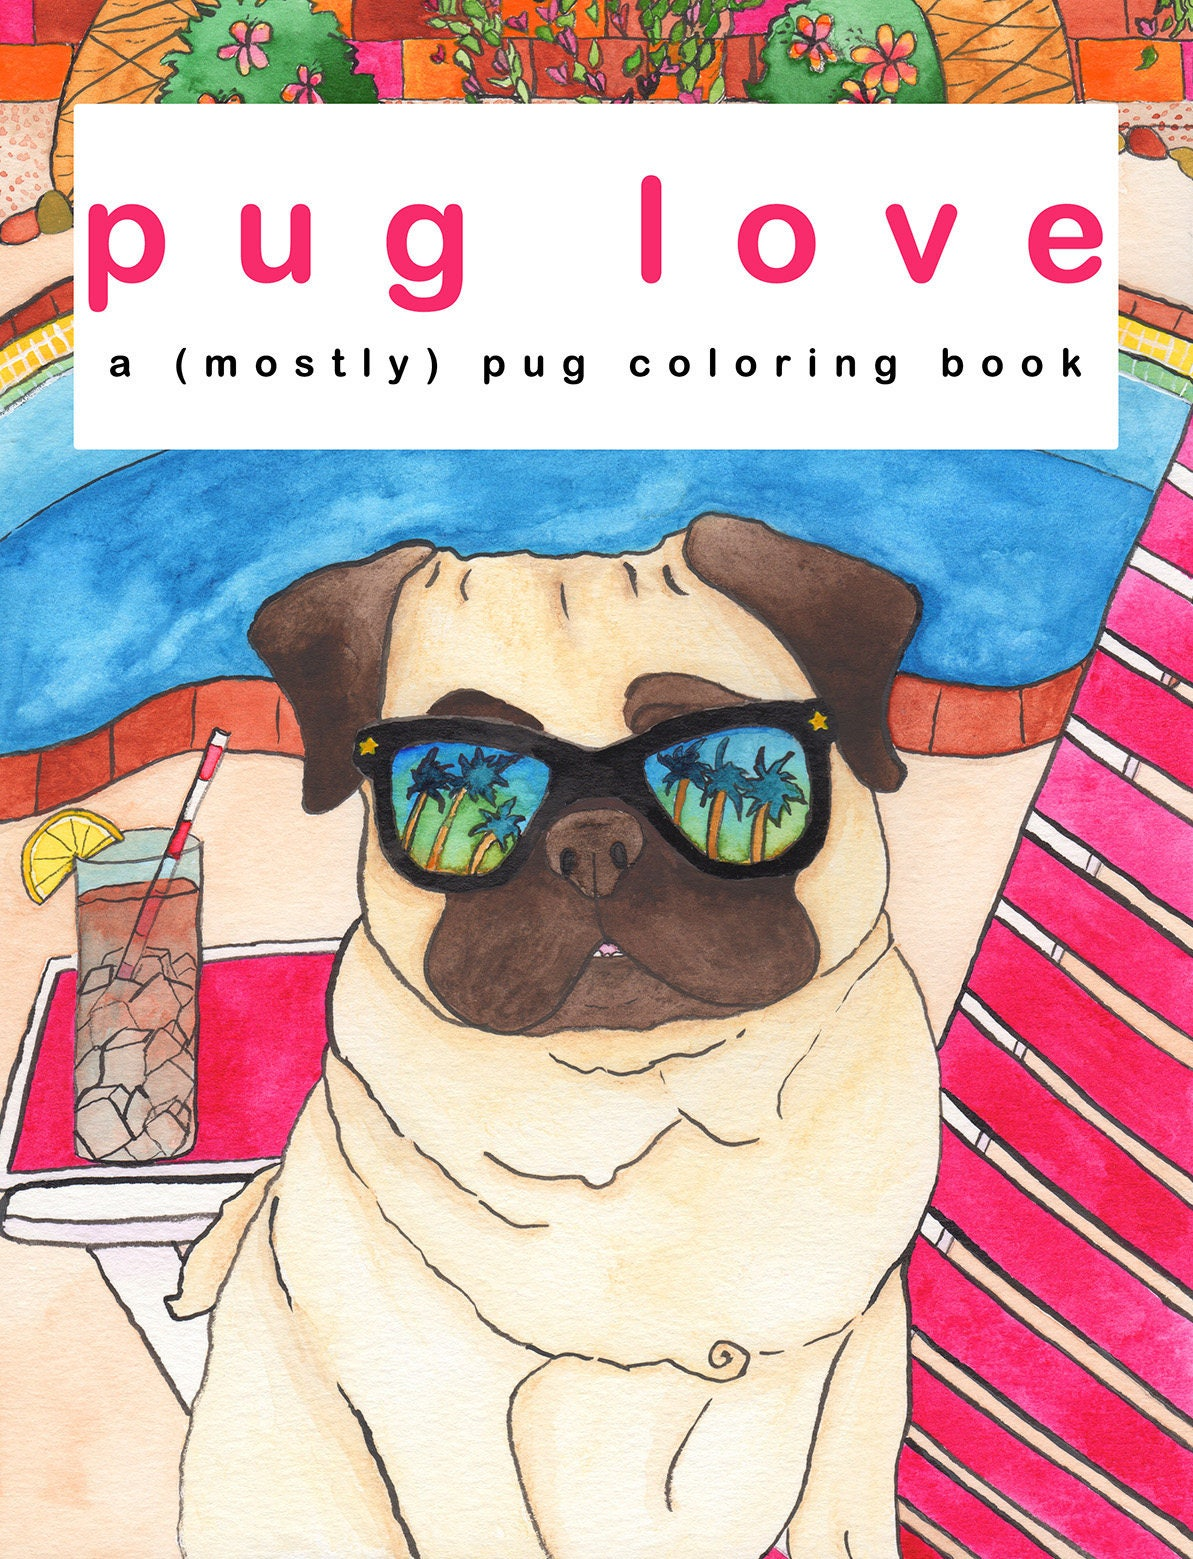 pug dog coloring book print pug dog lover gifts self